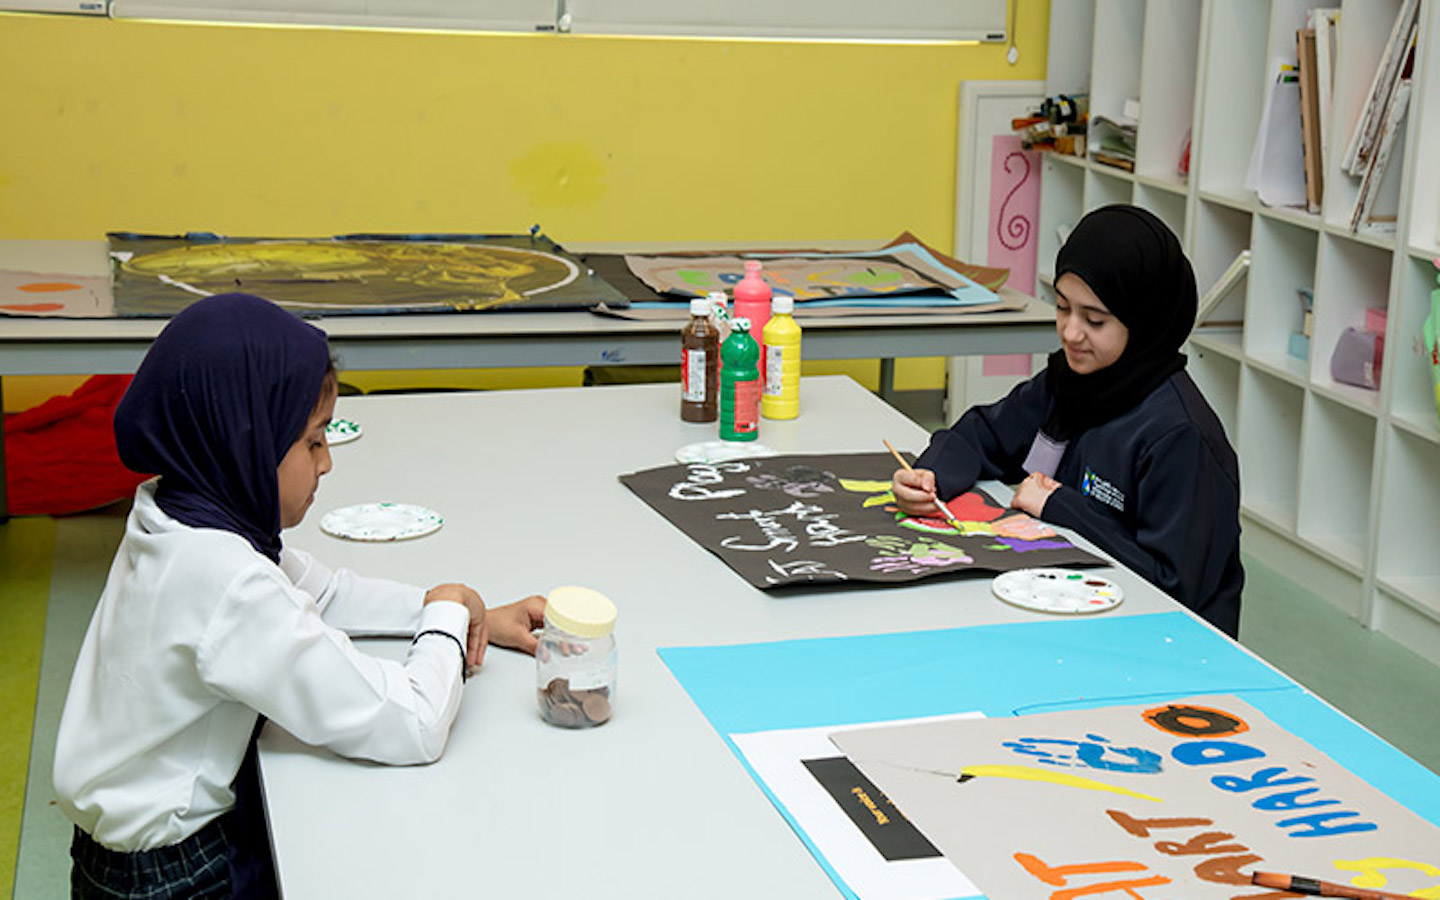 two school children working on a project